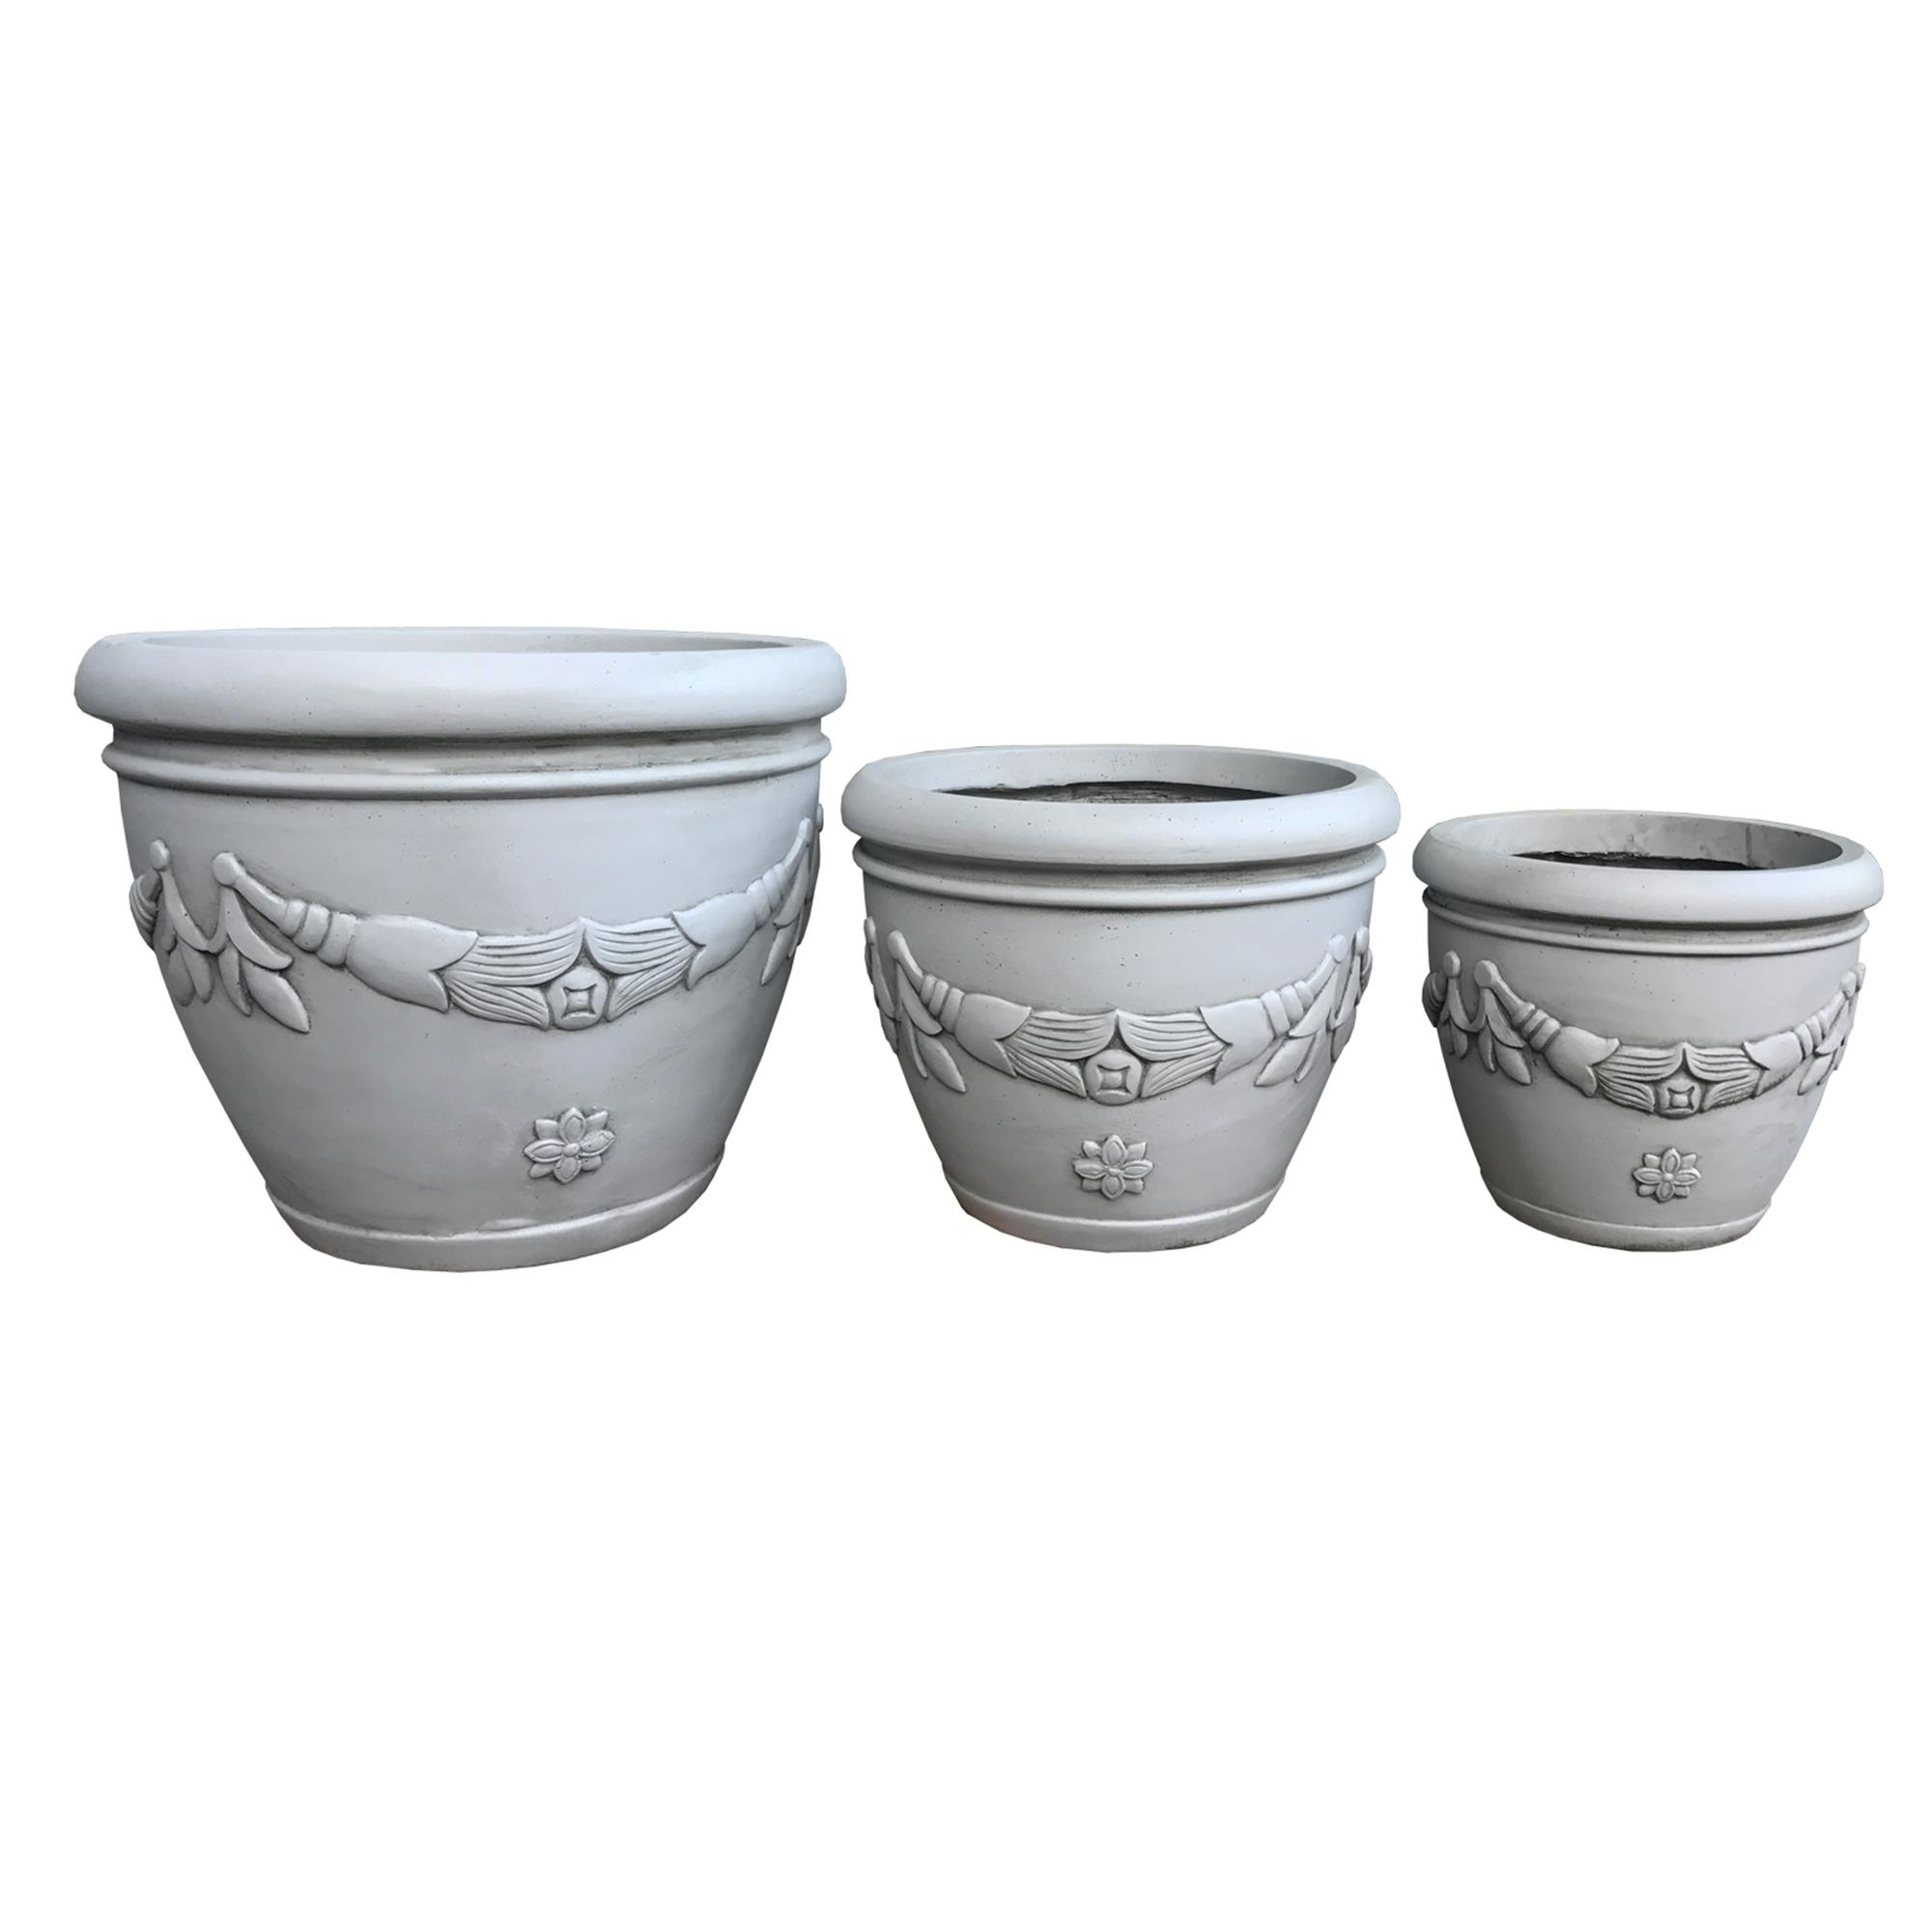 European steal oval decorative planter